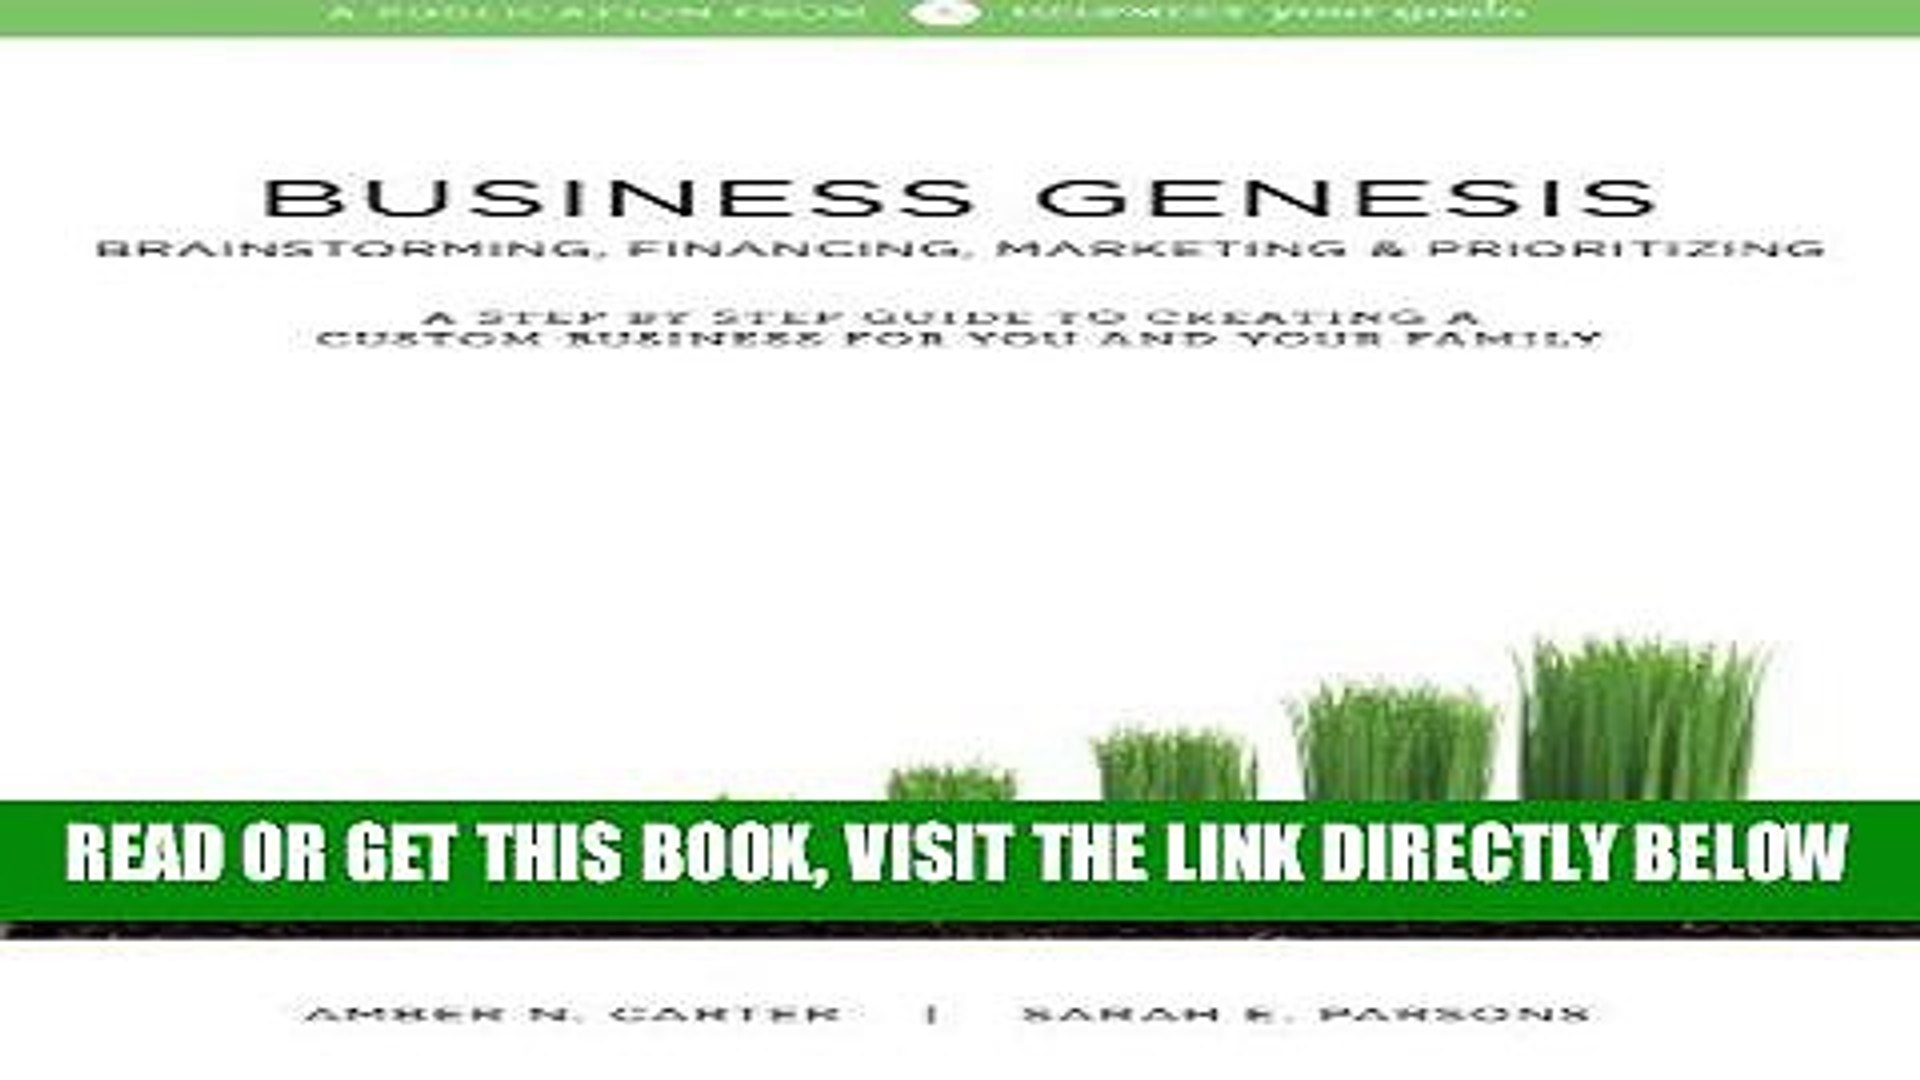 [New] PDF Business Genesis: Brainstorming, Financing, Marketing   Prioritizing: A Step By Step